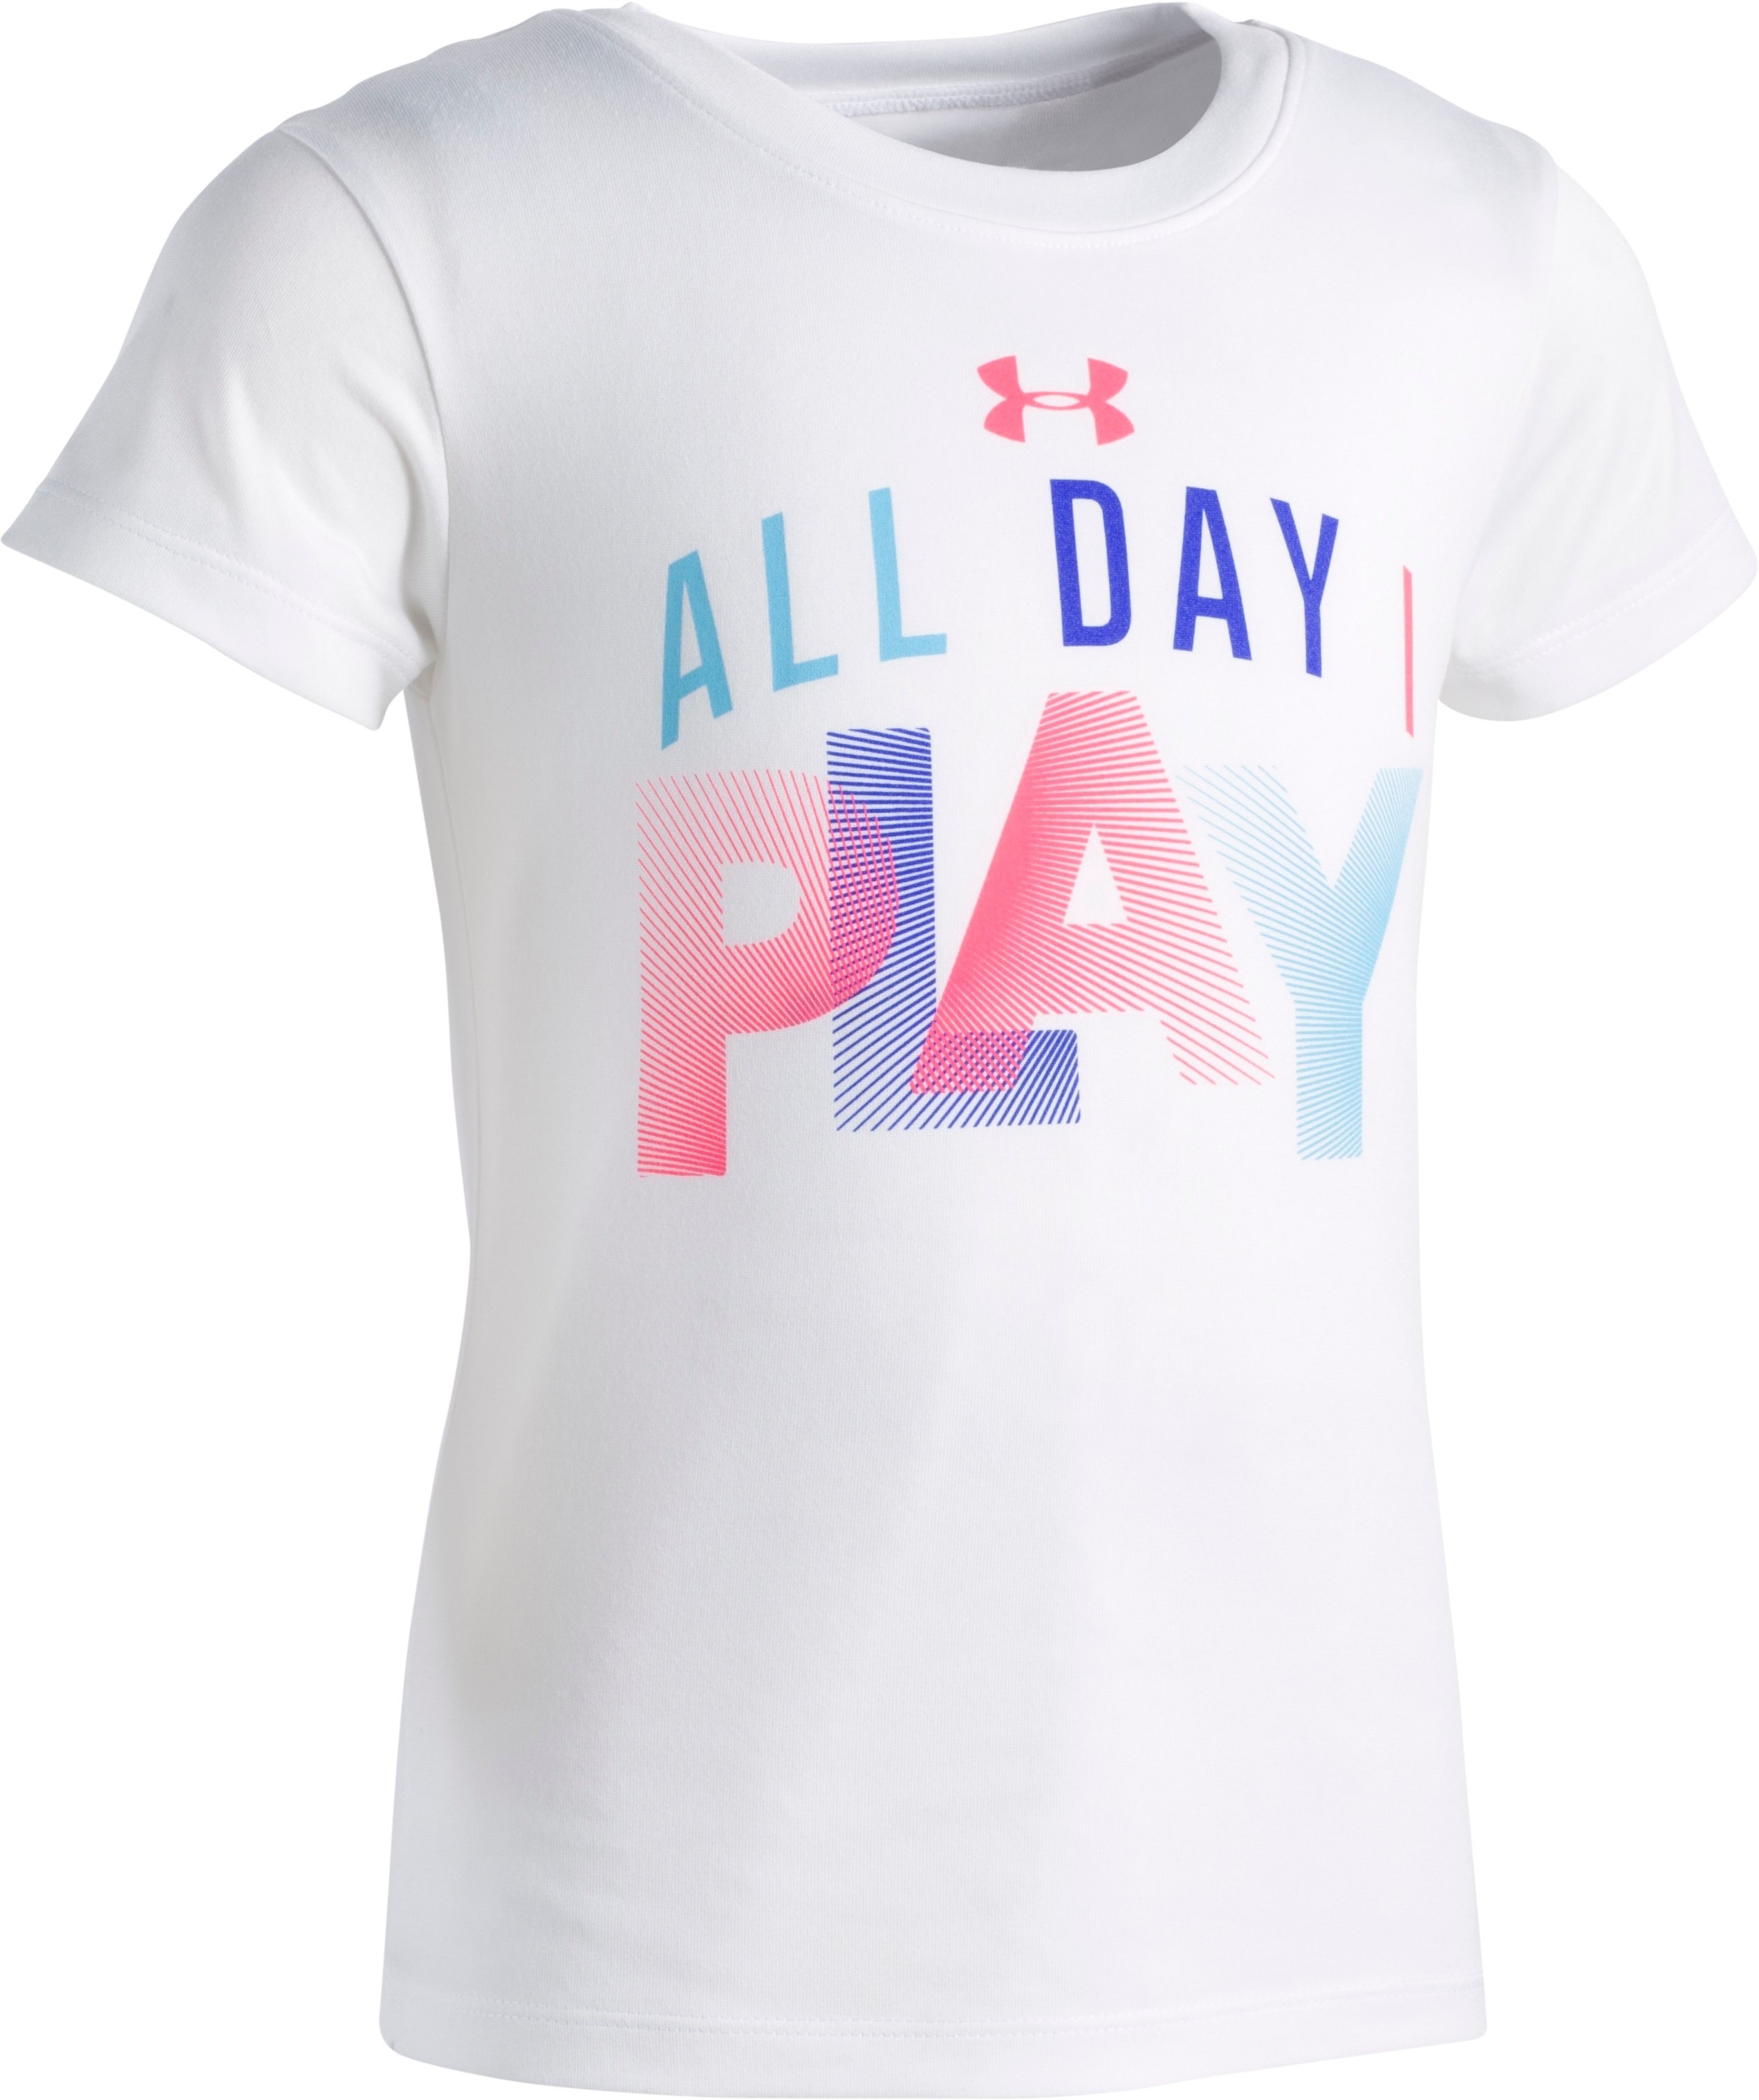 Girls' Pre-School UA All Day I Play Short Sleeve, White, zoomed